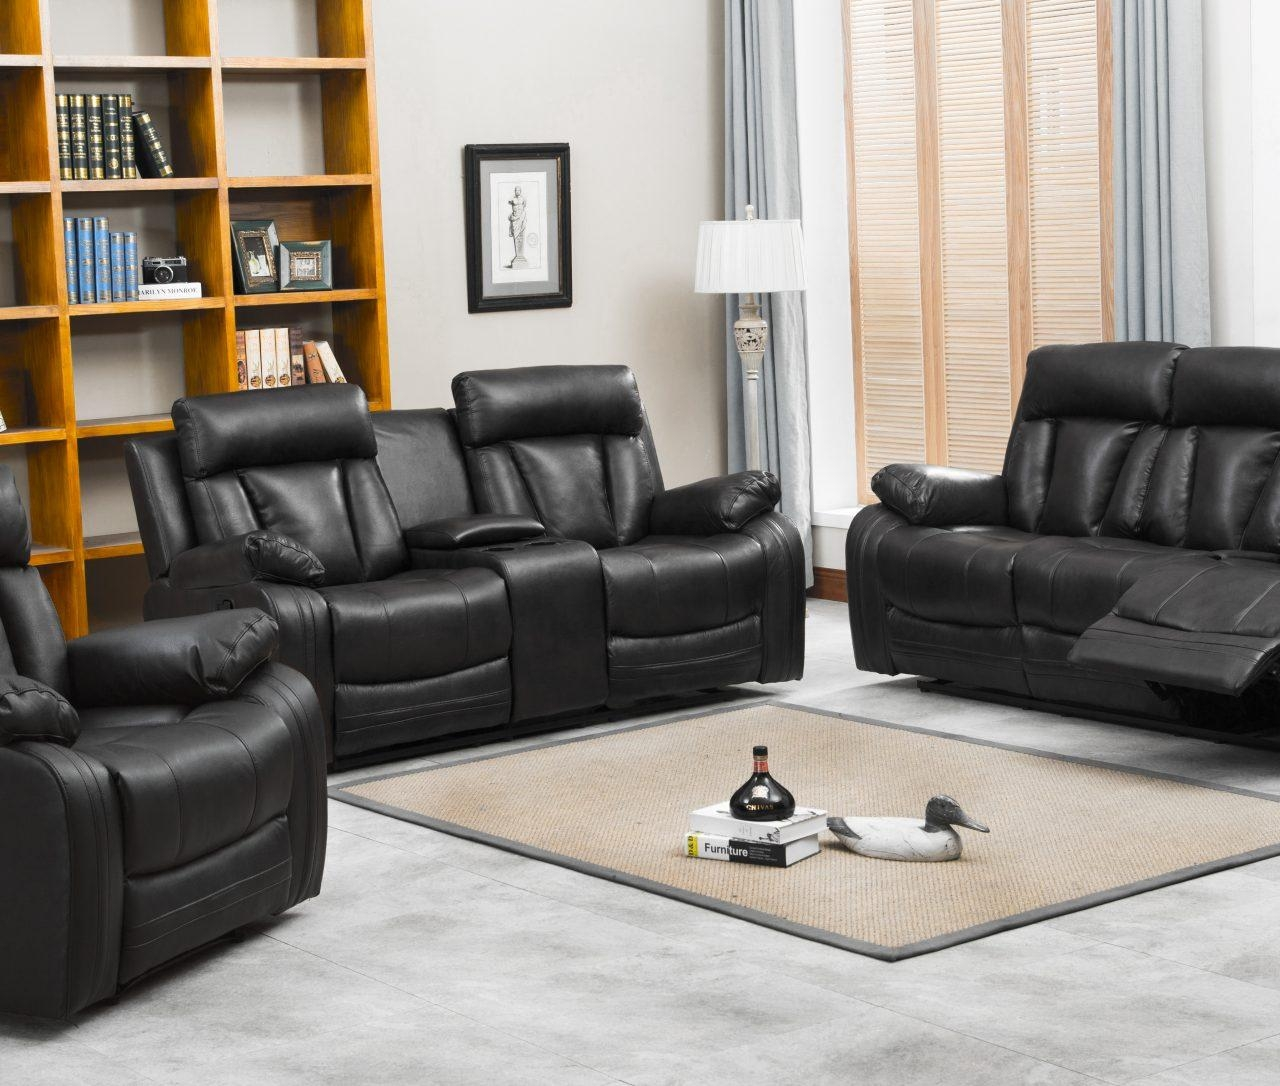 Naples Reclining Sofa & Loveseat W/cupholders And Console Set With Reclining Sofas And Loveseats Sets (Image 11 of 20)